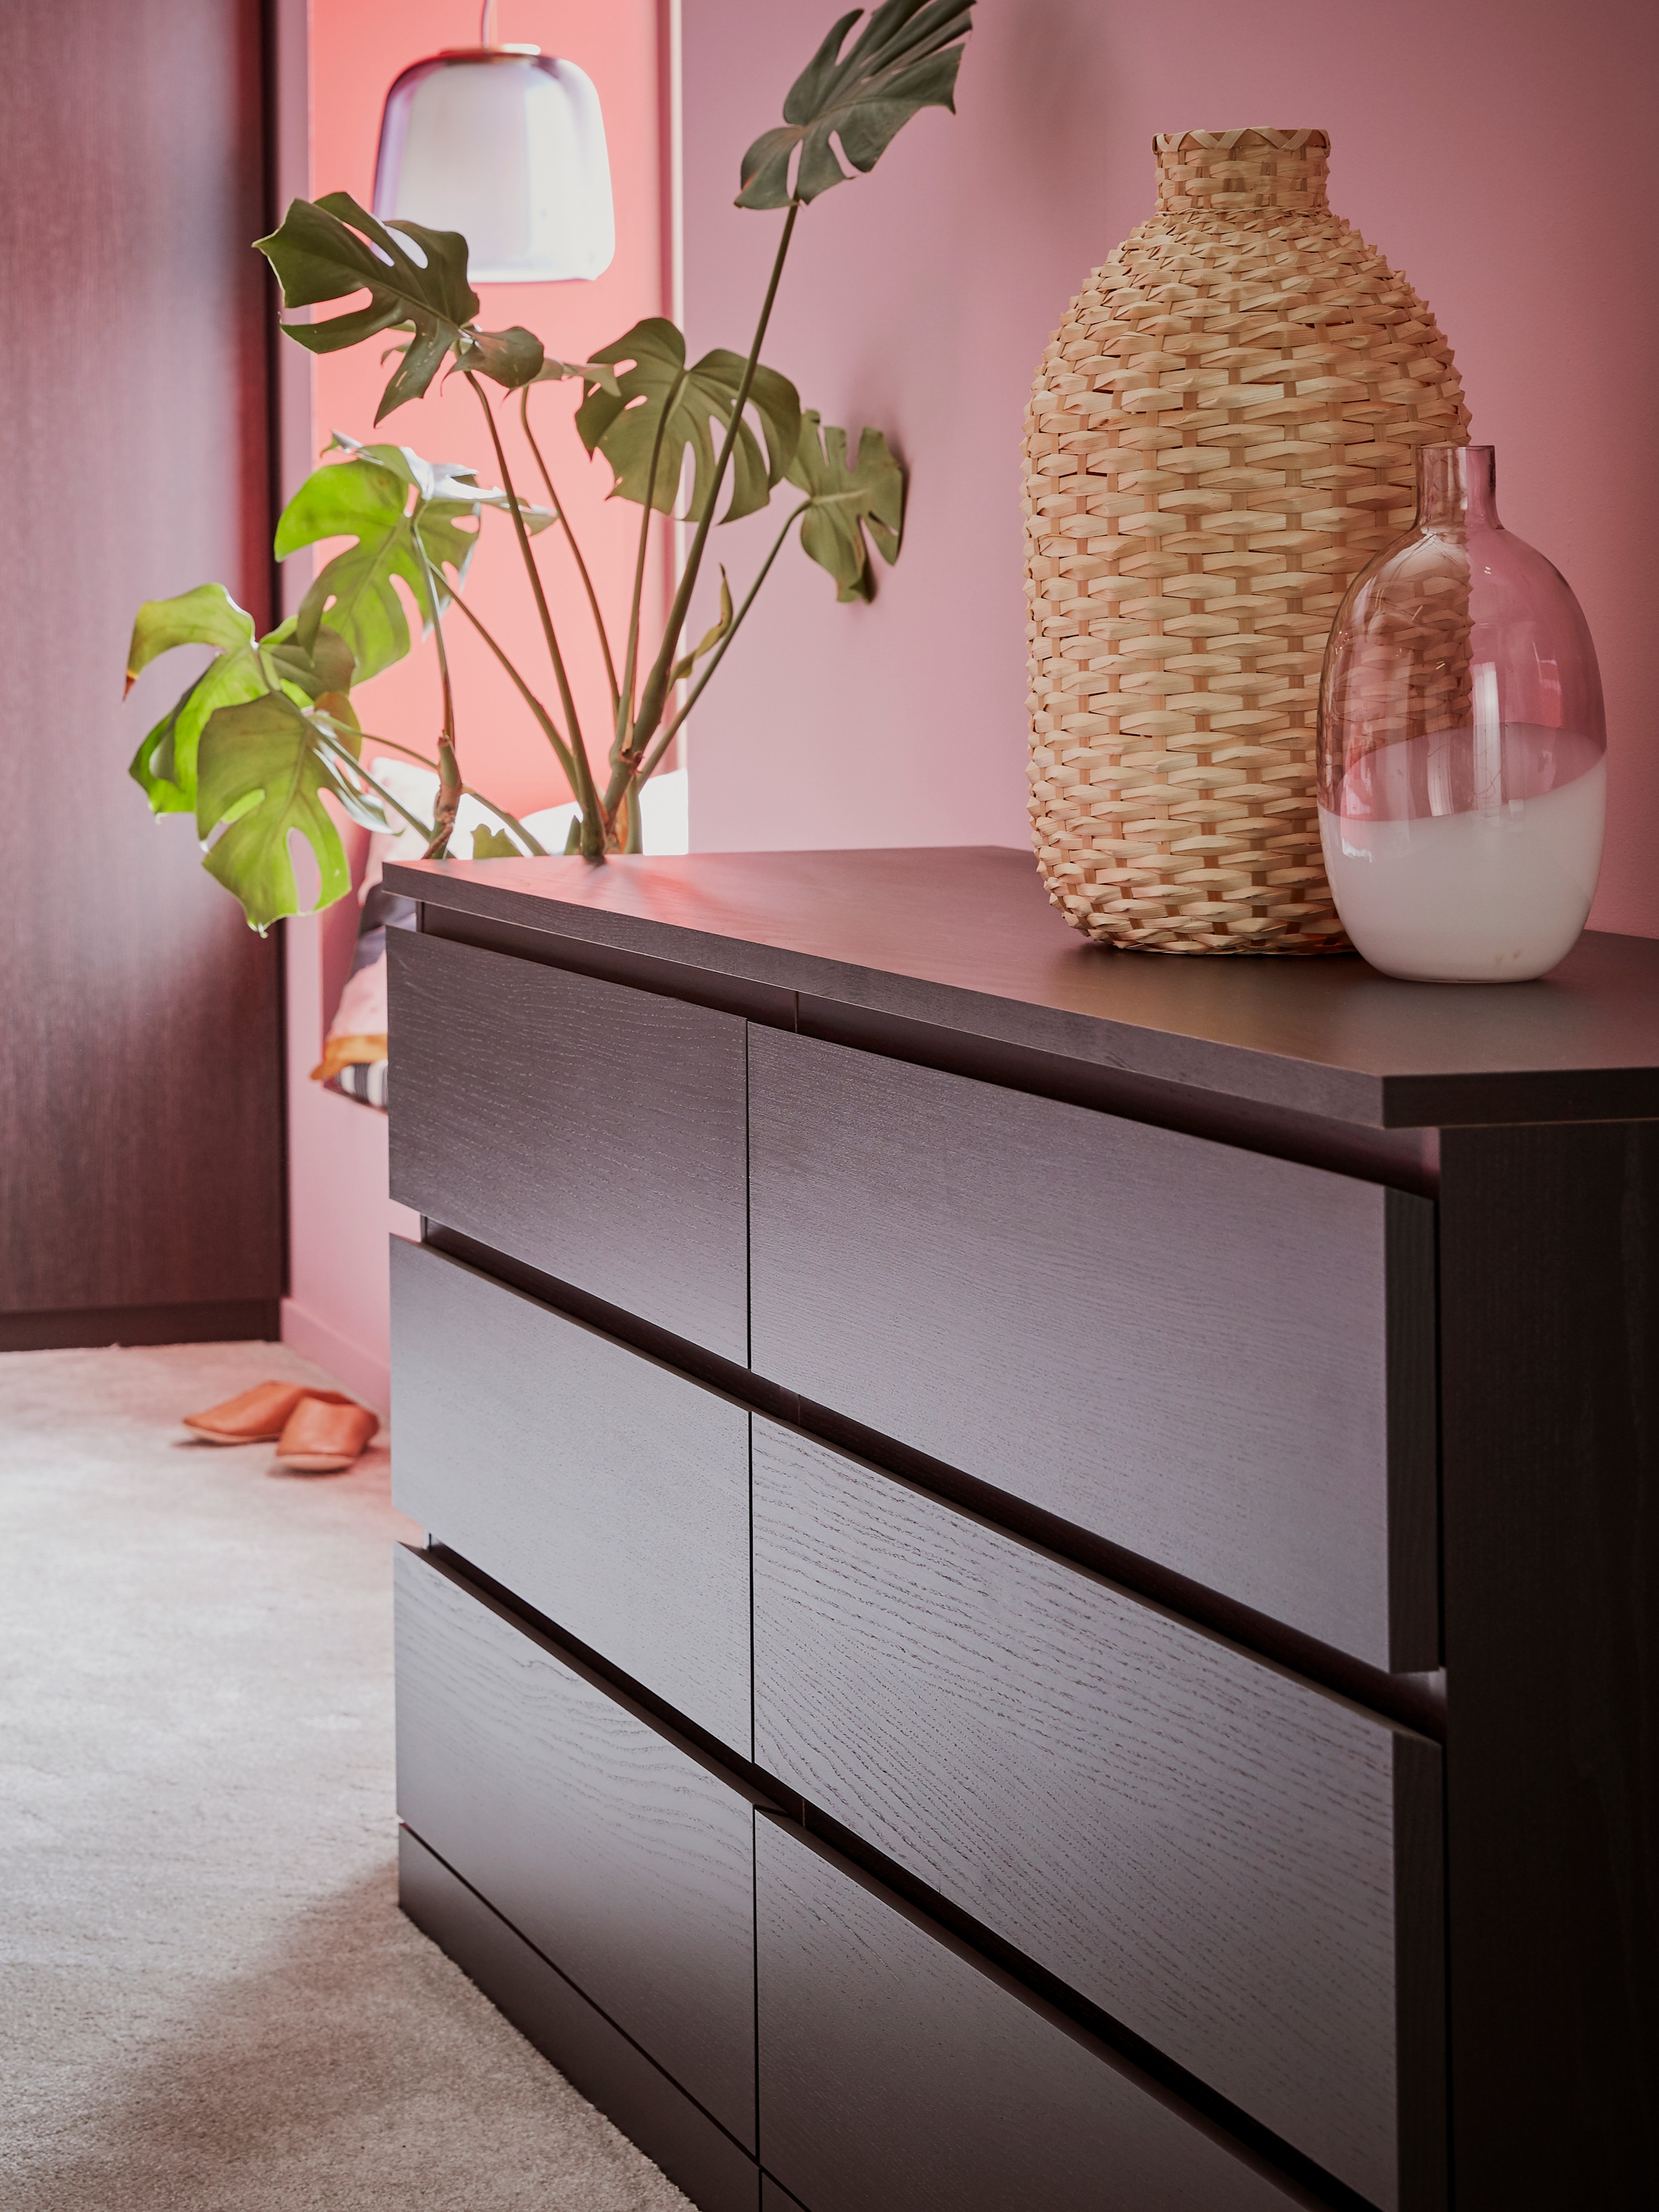 A pink room that has a MALM chest of drawers in a black-brown finish with six drawers and two vases on top.